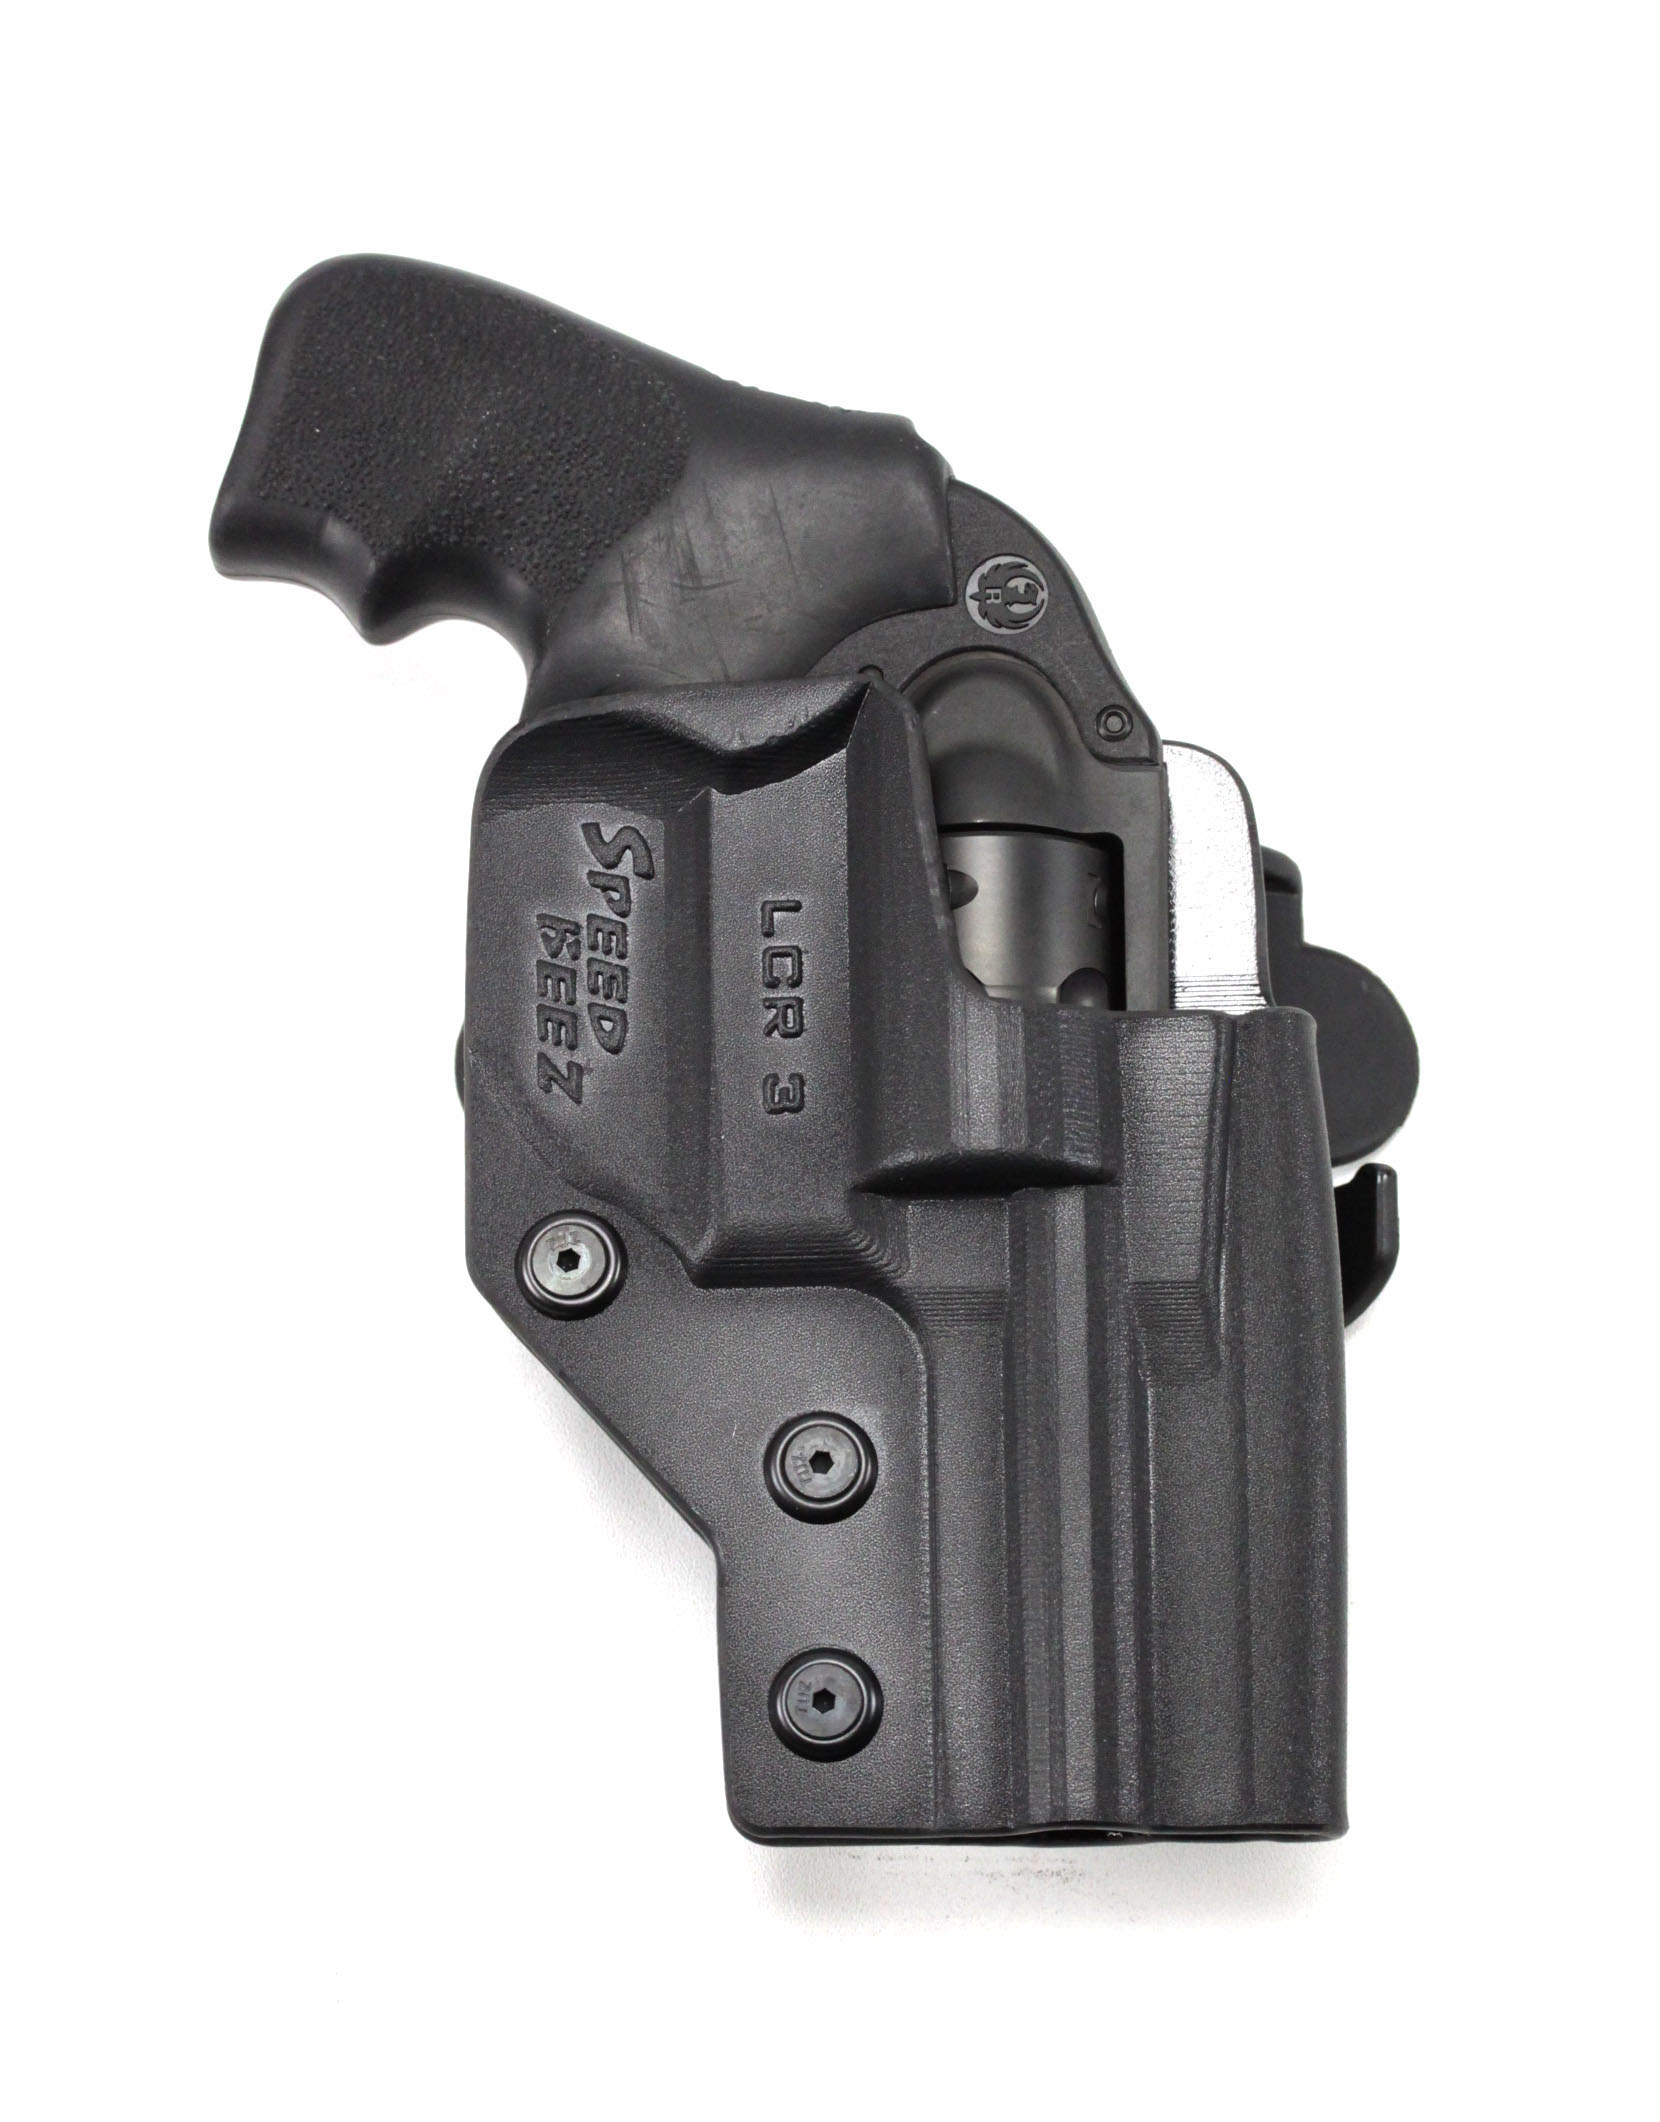 SPEED BEEZ® Ruger LCR 3 Inch Tactical Revolver Holster Outside the Waist  Band OWB (Fits any LCR up to 3 Inch Barrel)